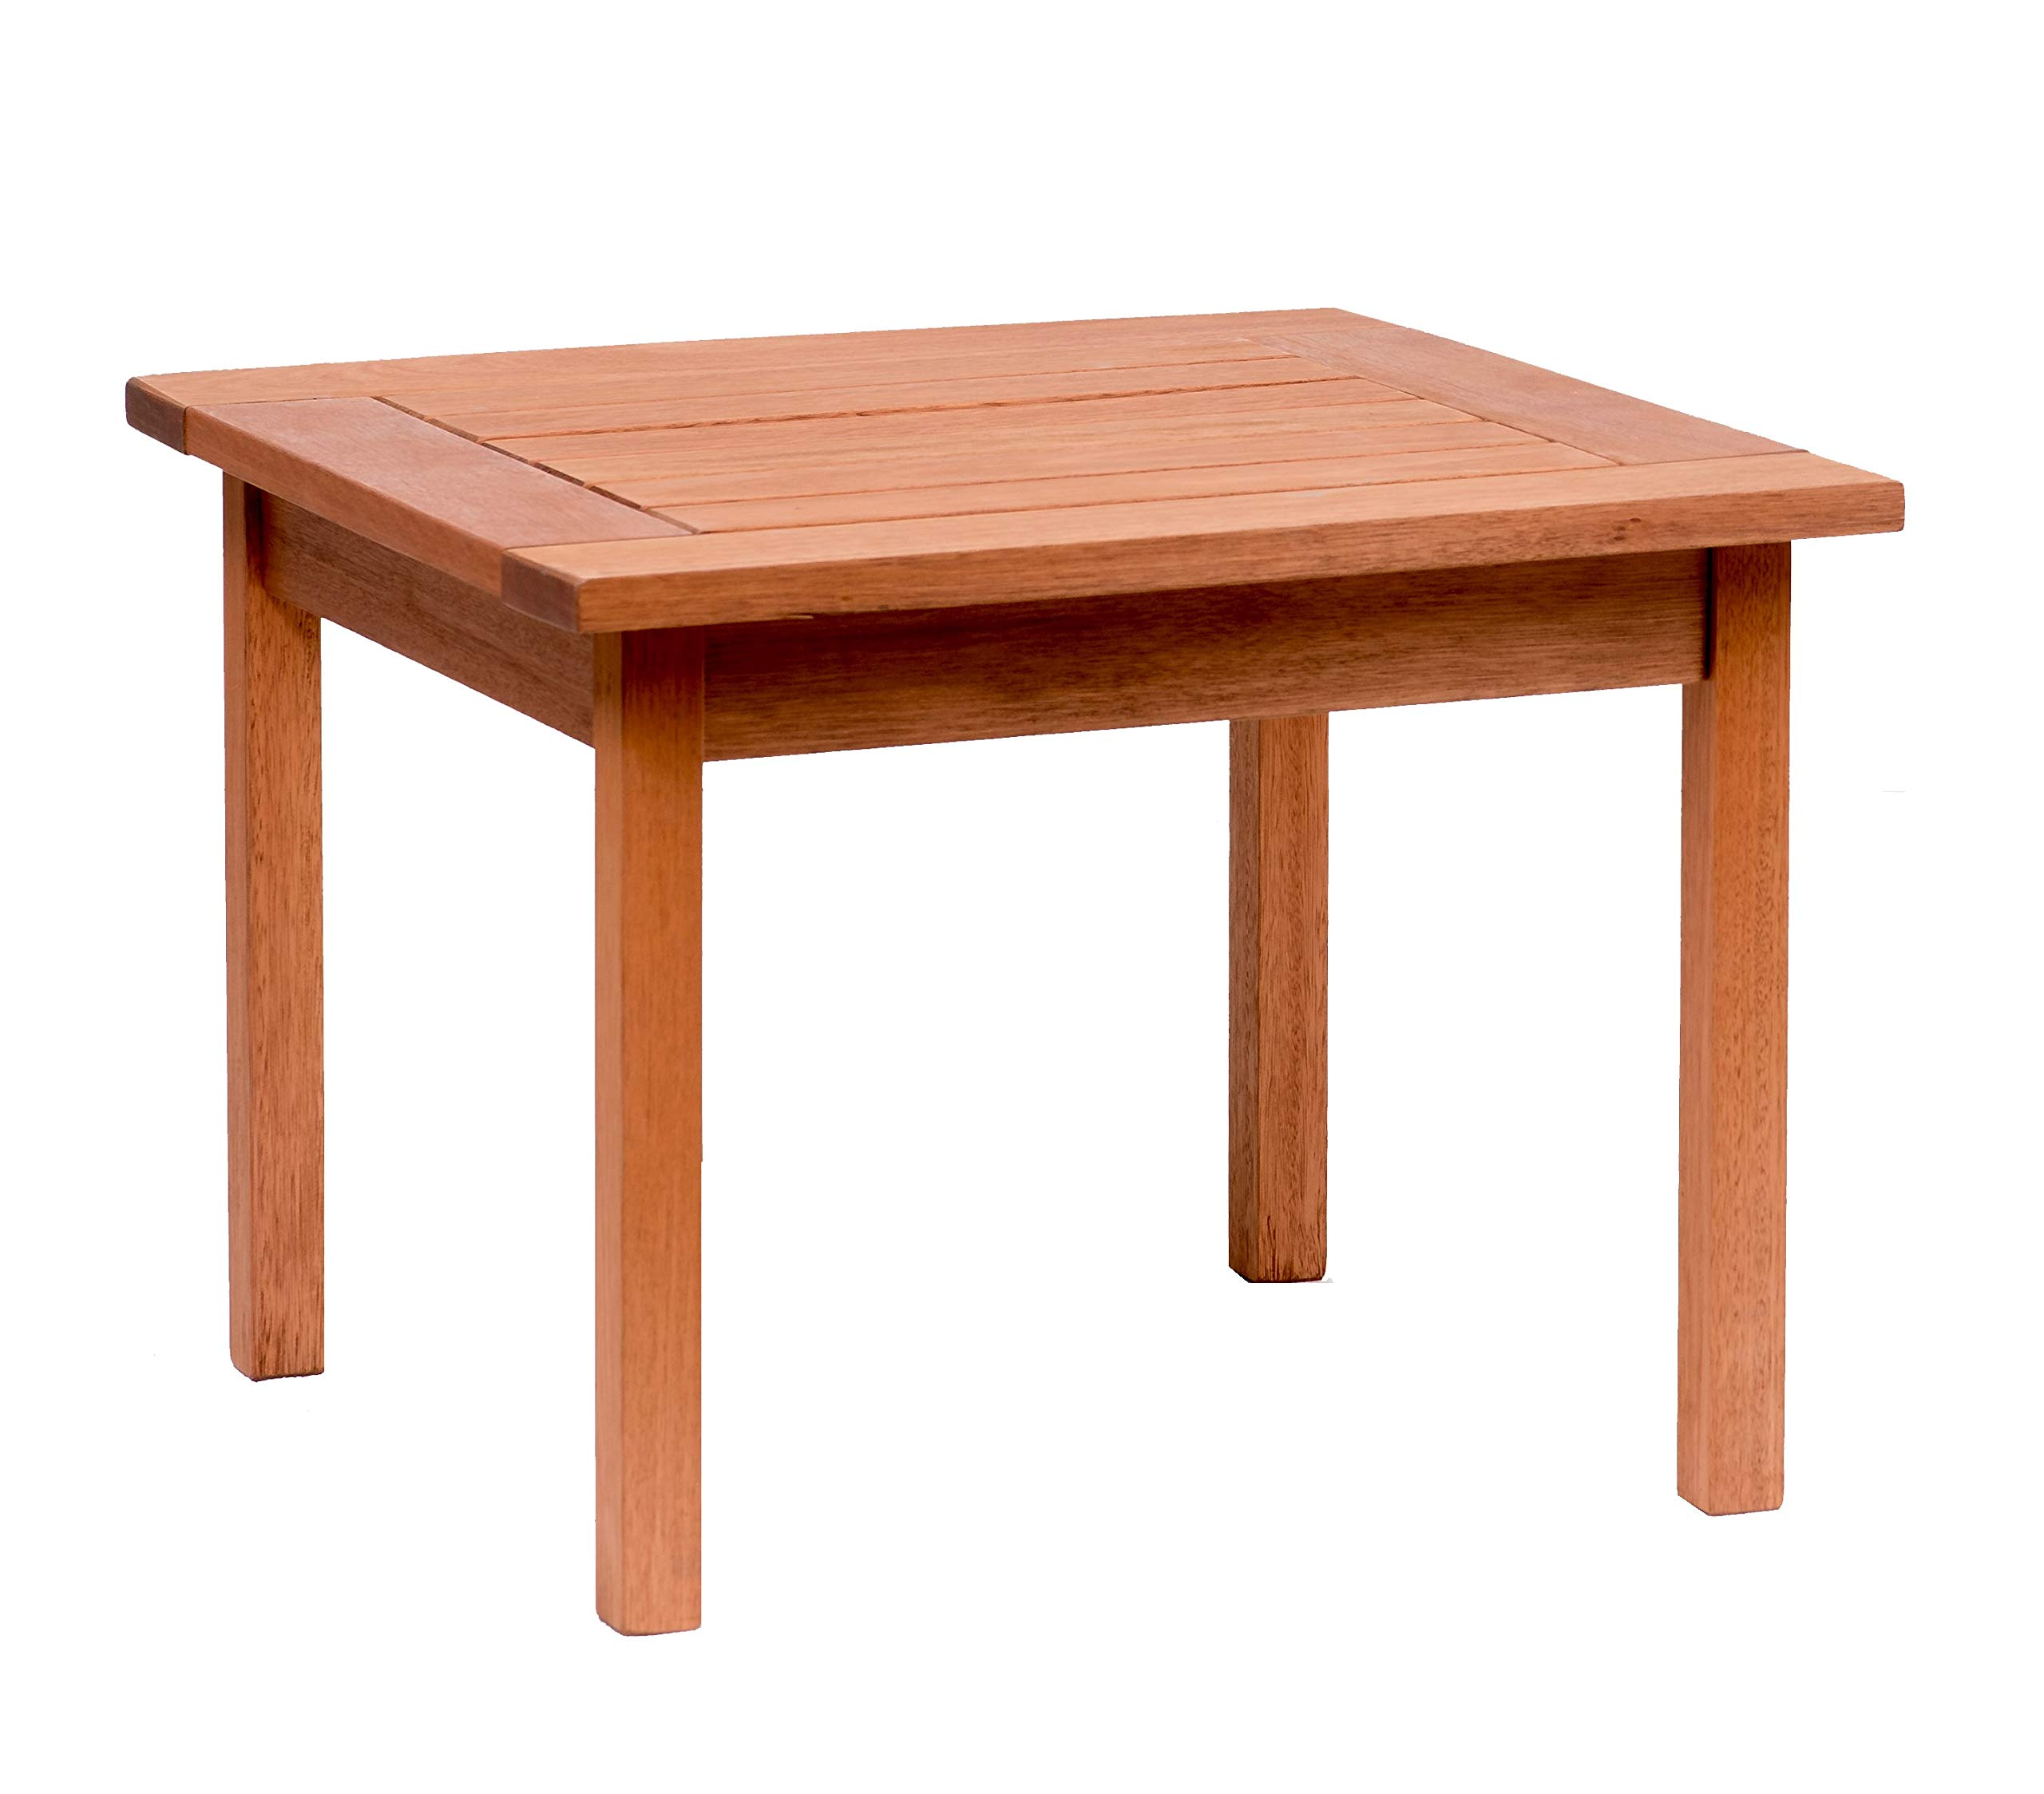 Amazonia Milano 1-Piece Outdoor Square Side Table | Eucalyptus Wood | Ideal for Patio and Indoors, 23.5 x 23.5